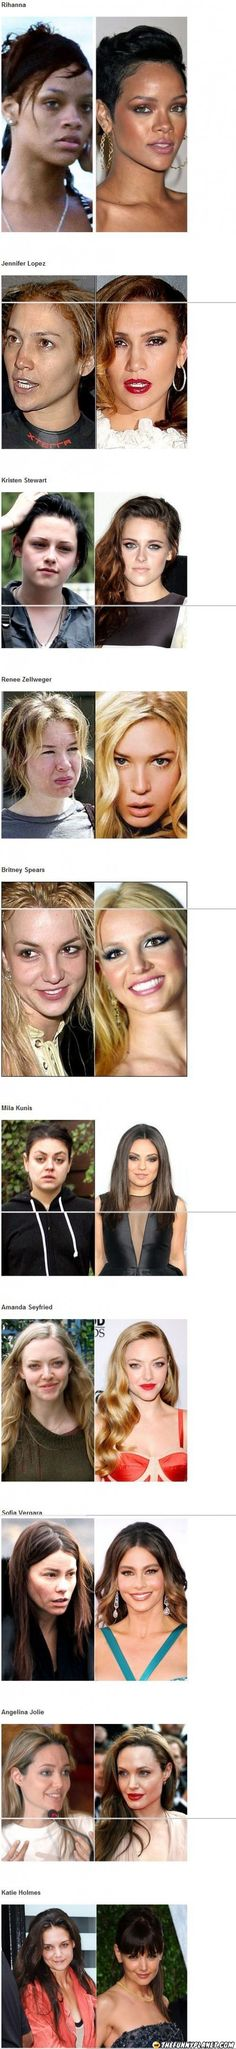 10 Celebrities With And Without Makeup